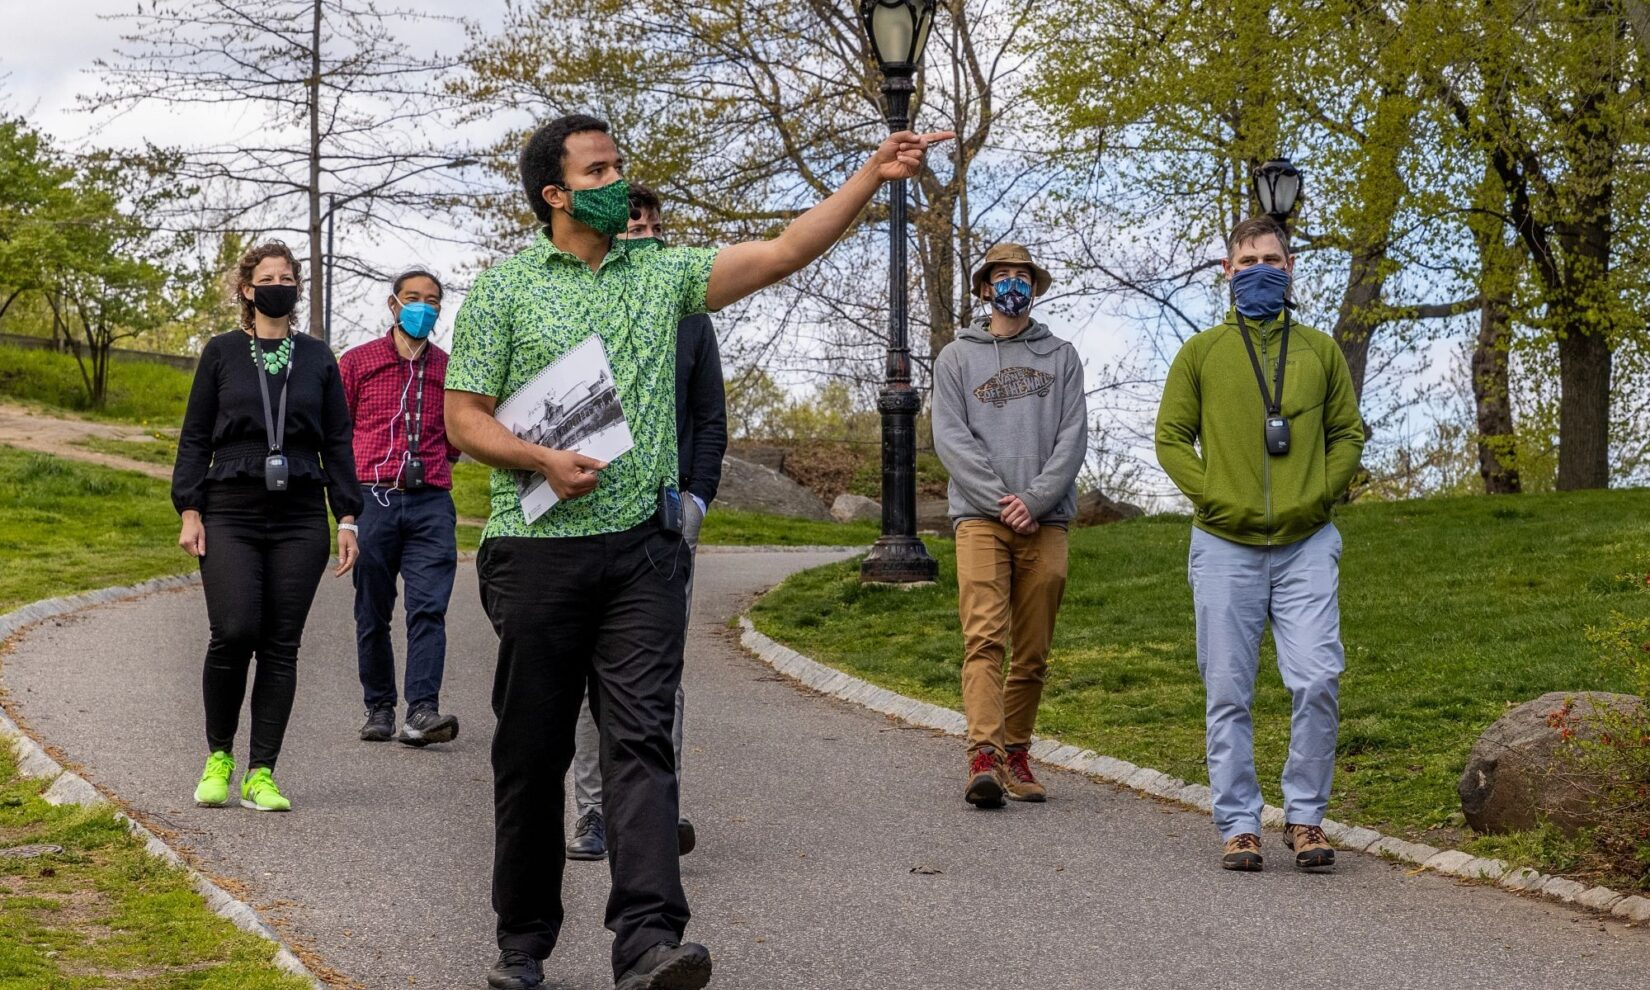 A Conservancy staff member leads a small group on a tour dow a park path